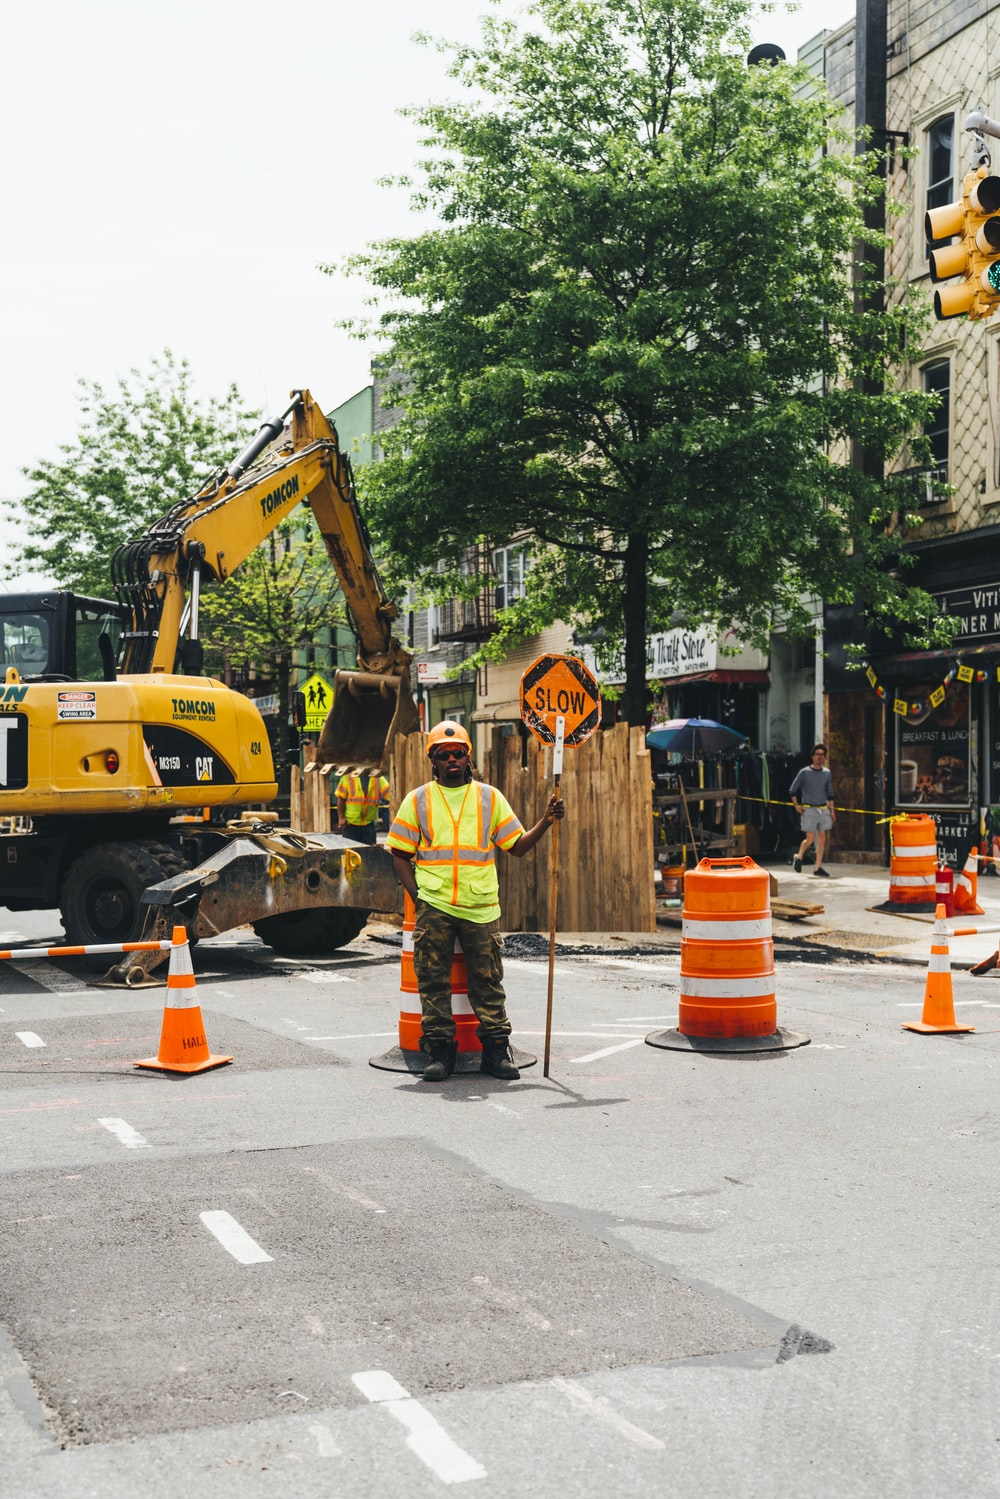 man wearing green reflective vest standing near traffic cones and backhoe